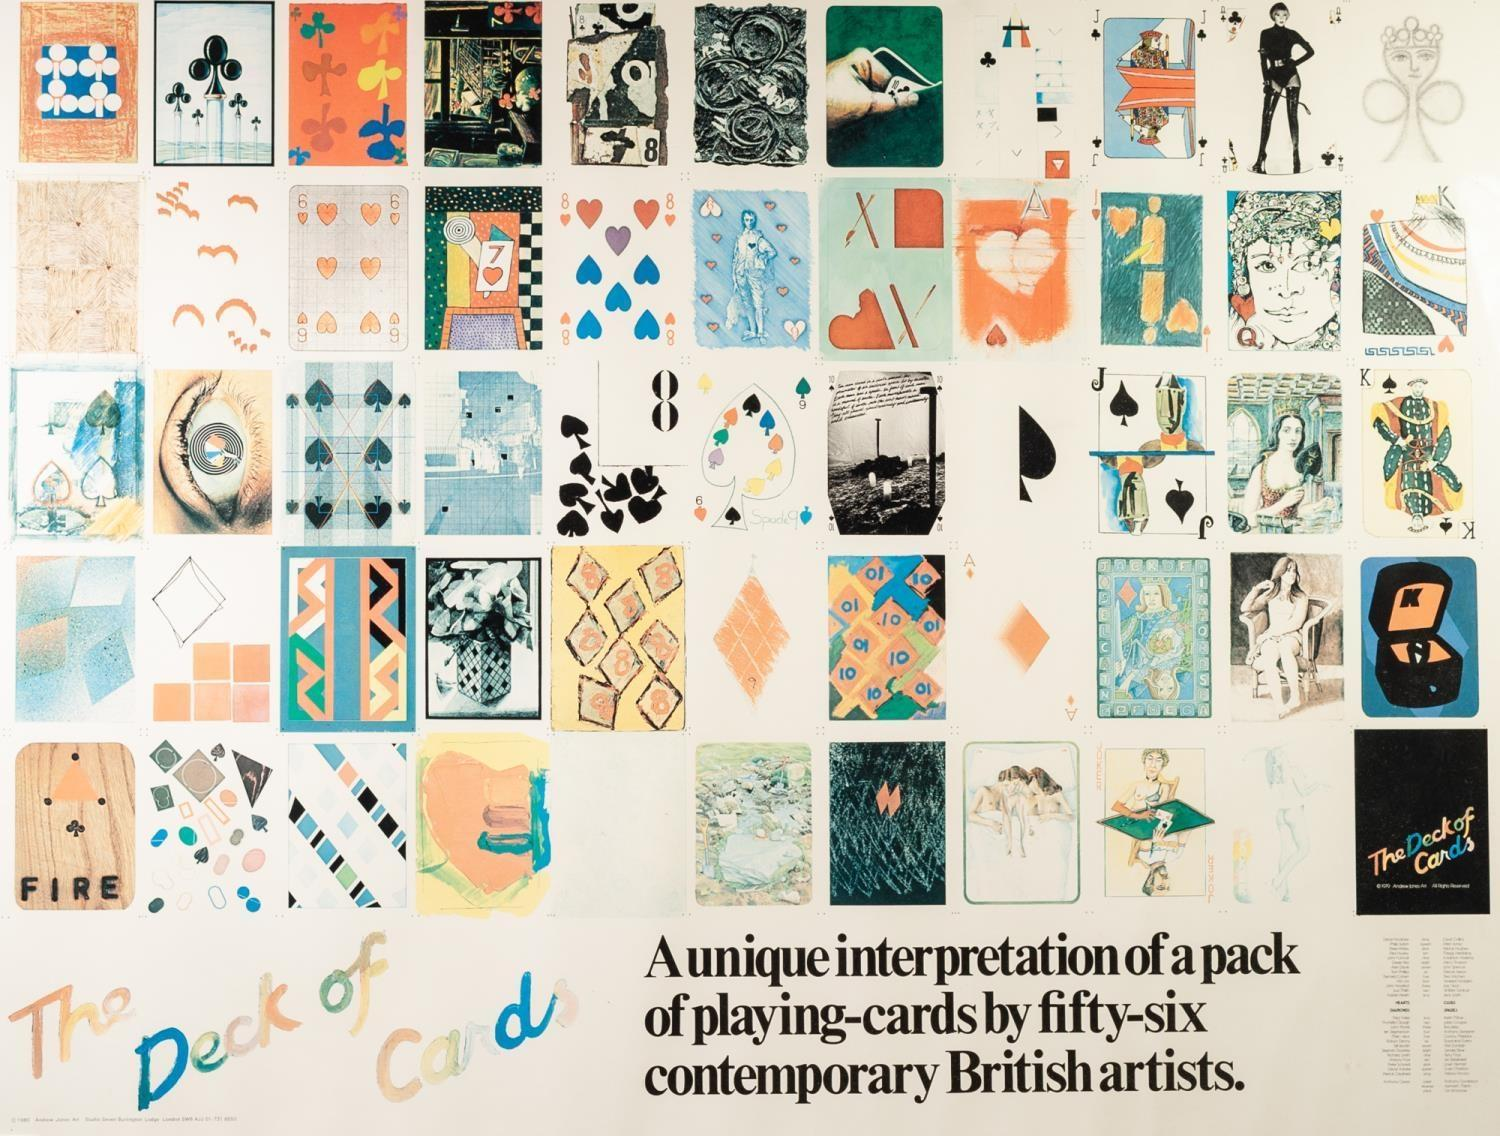 Lot 157 - ANDREW JONES ART, ?THE DECK OF CARDS? COLOUR PRINT ?A unique interpretation of a pack of playing-